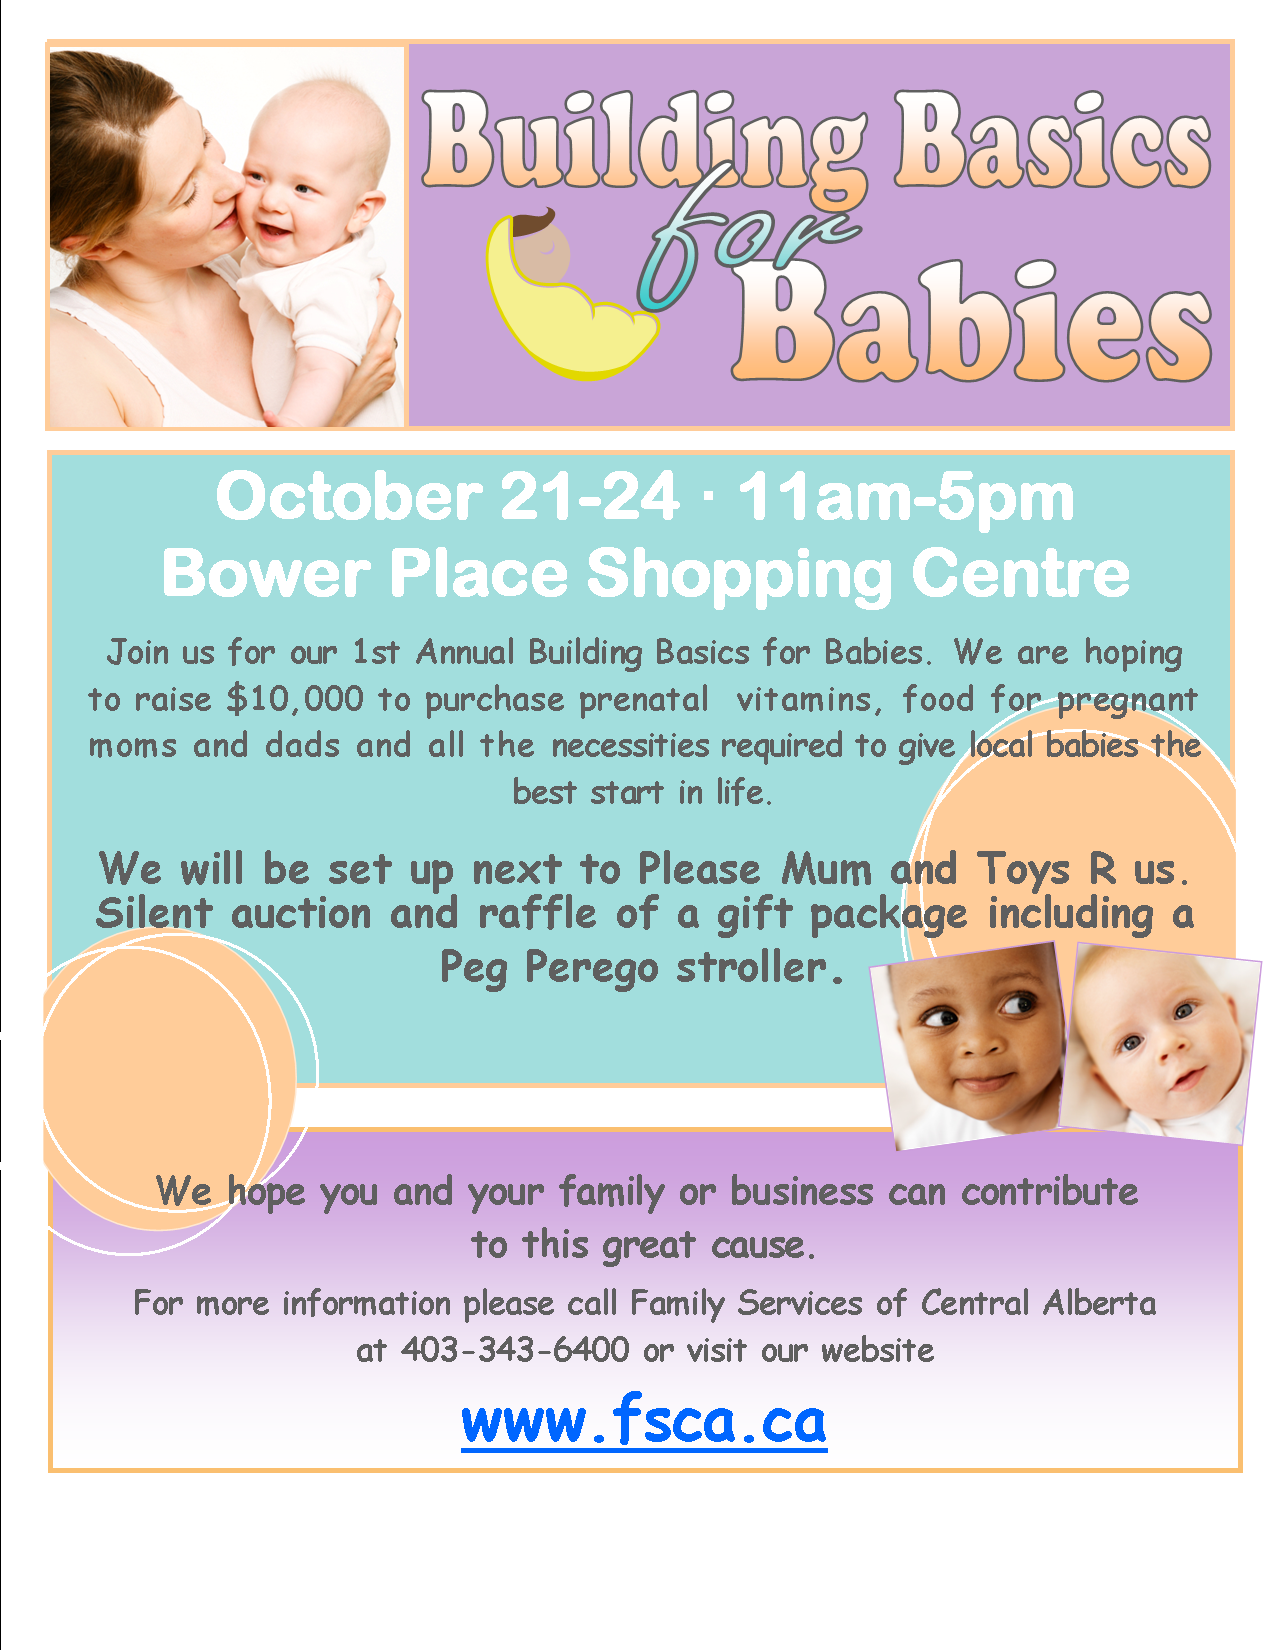 Building Basics for Babies in Red Deer